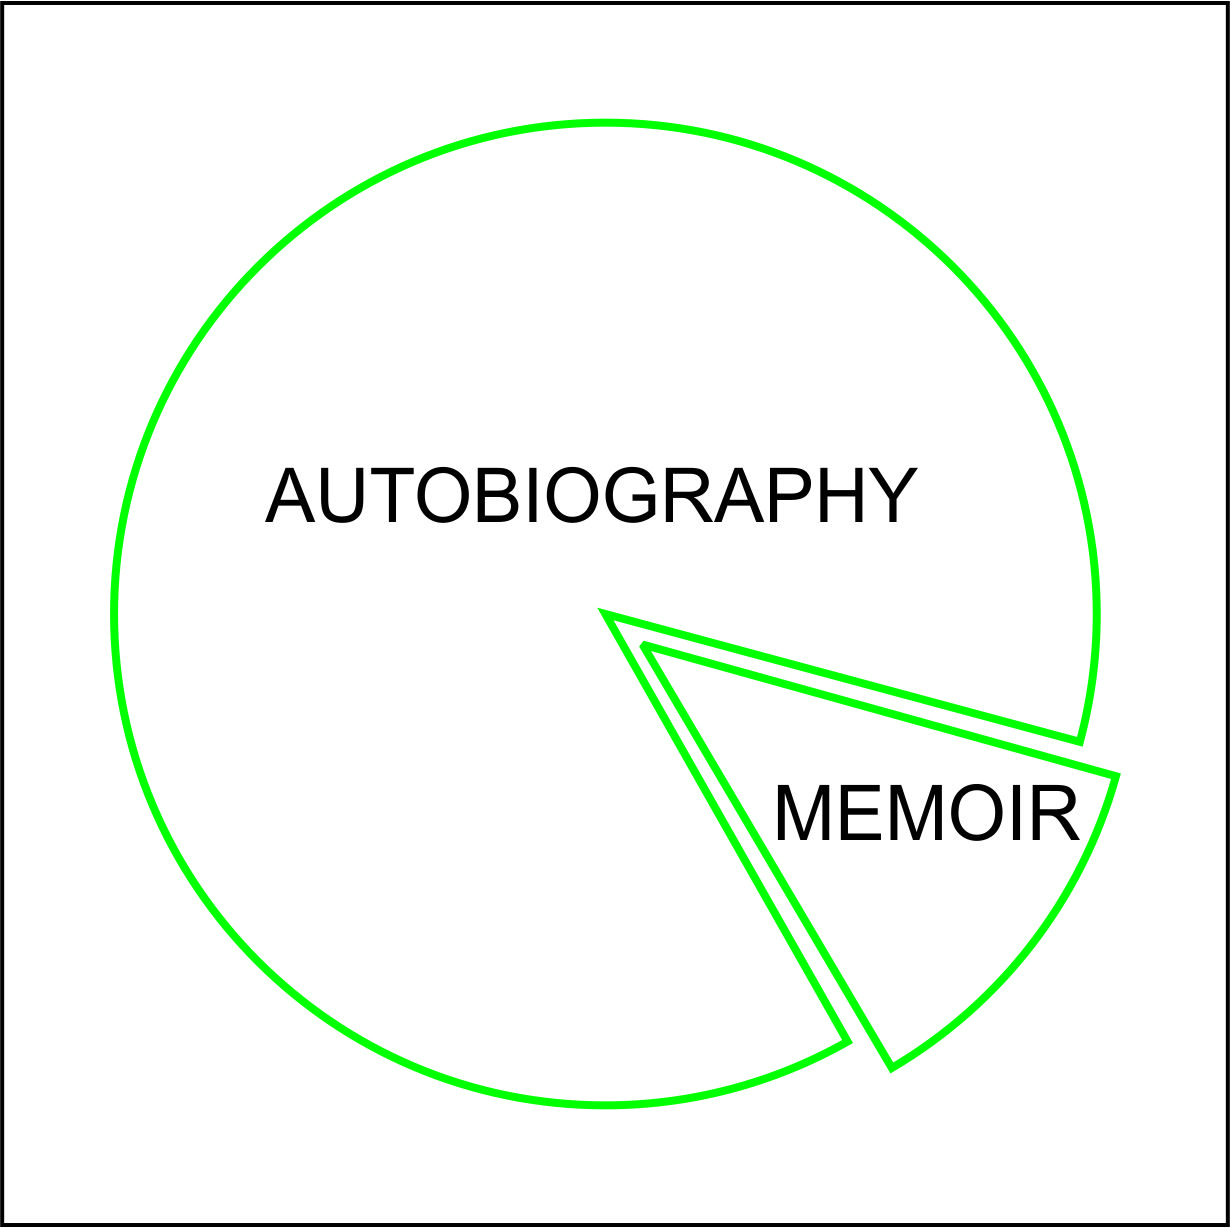 difference between autobiography and memoir